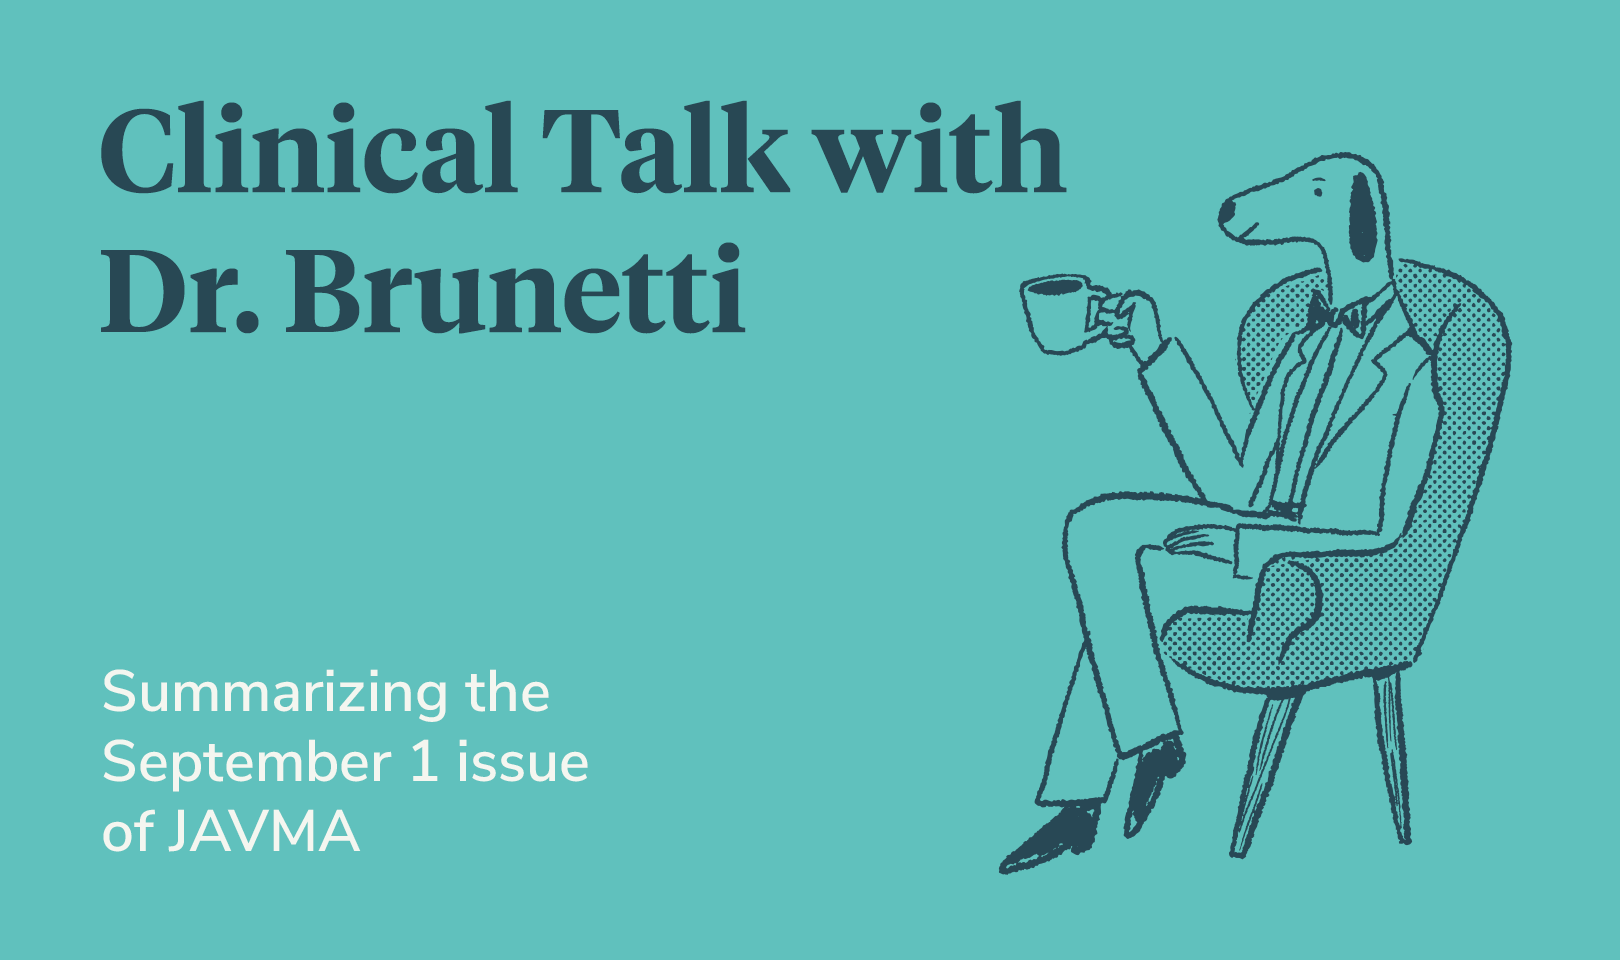 Clinical Talk with Dr. Brunetti - September 2020